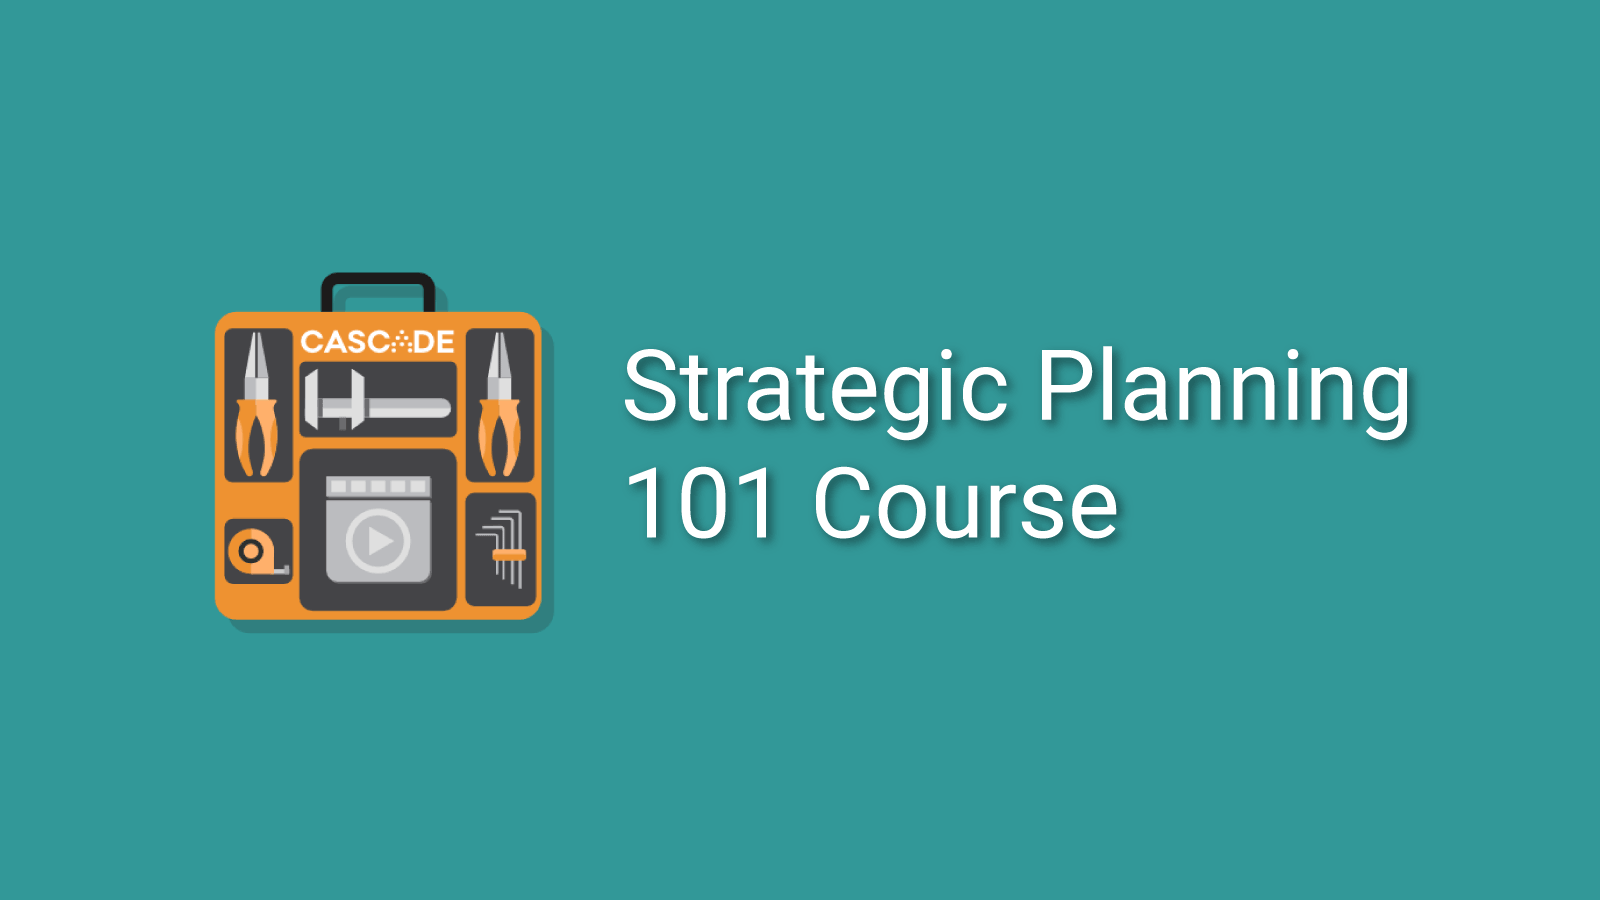 Strategic planning course